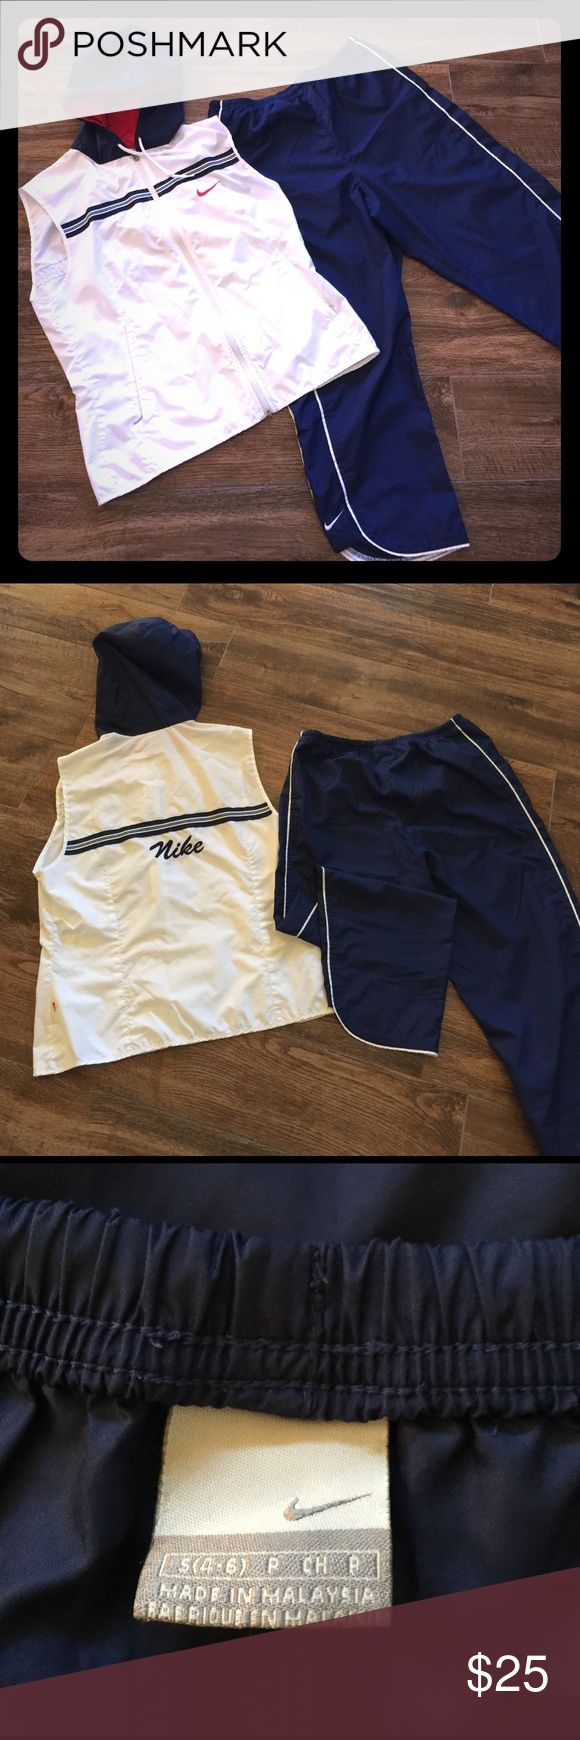 Nike Jogging Suit Lightweight material great for summer.  The matching set comes with a dark blue capri and white hooded vest.     The pants are a true 4/6. The vest runs small so I bought the bigger size (8/10) to go with the pants. Nike Other